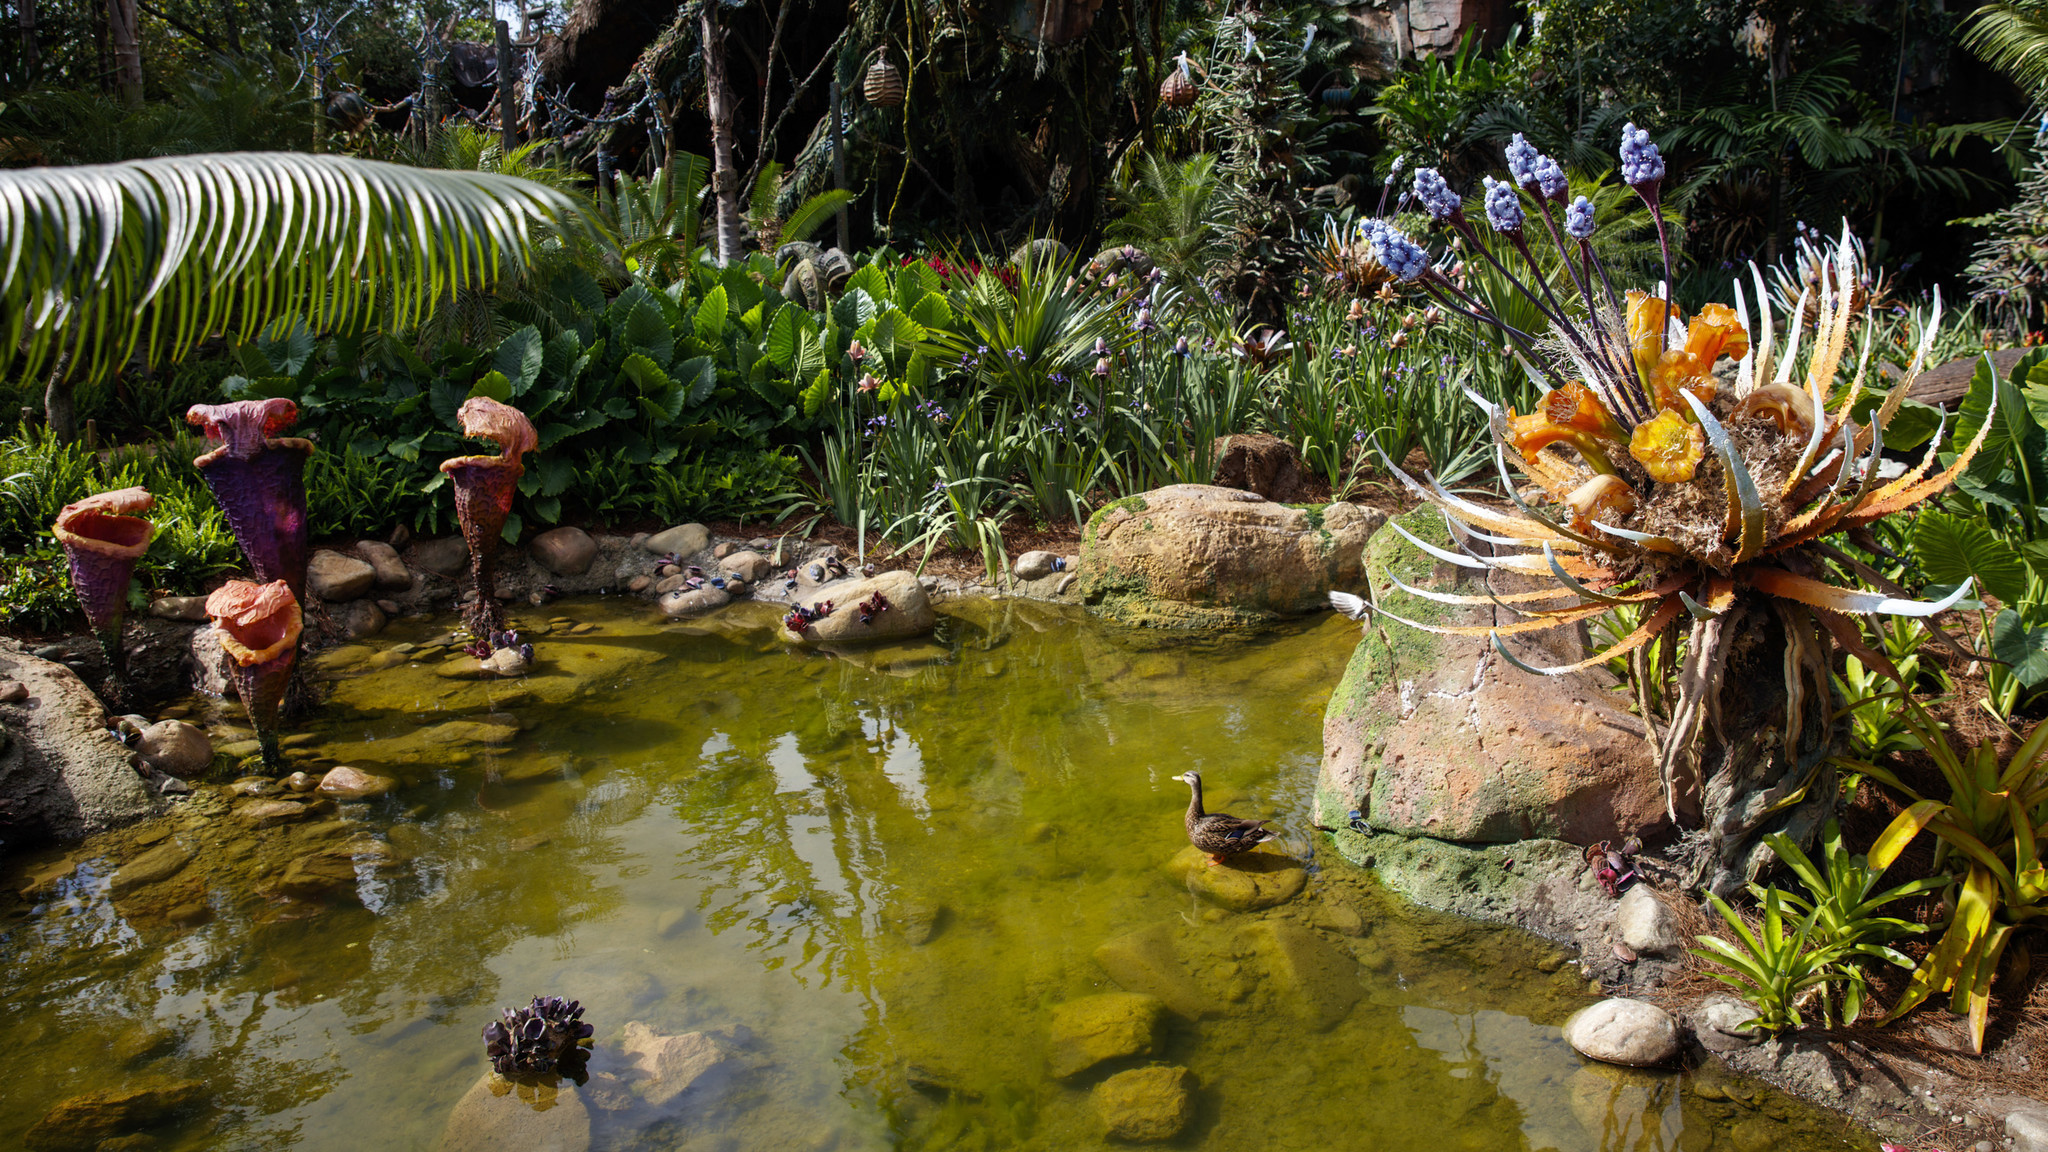 Real wildlife invades Pandora.